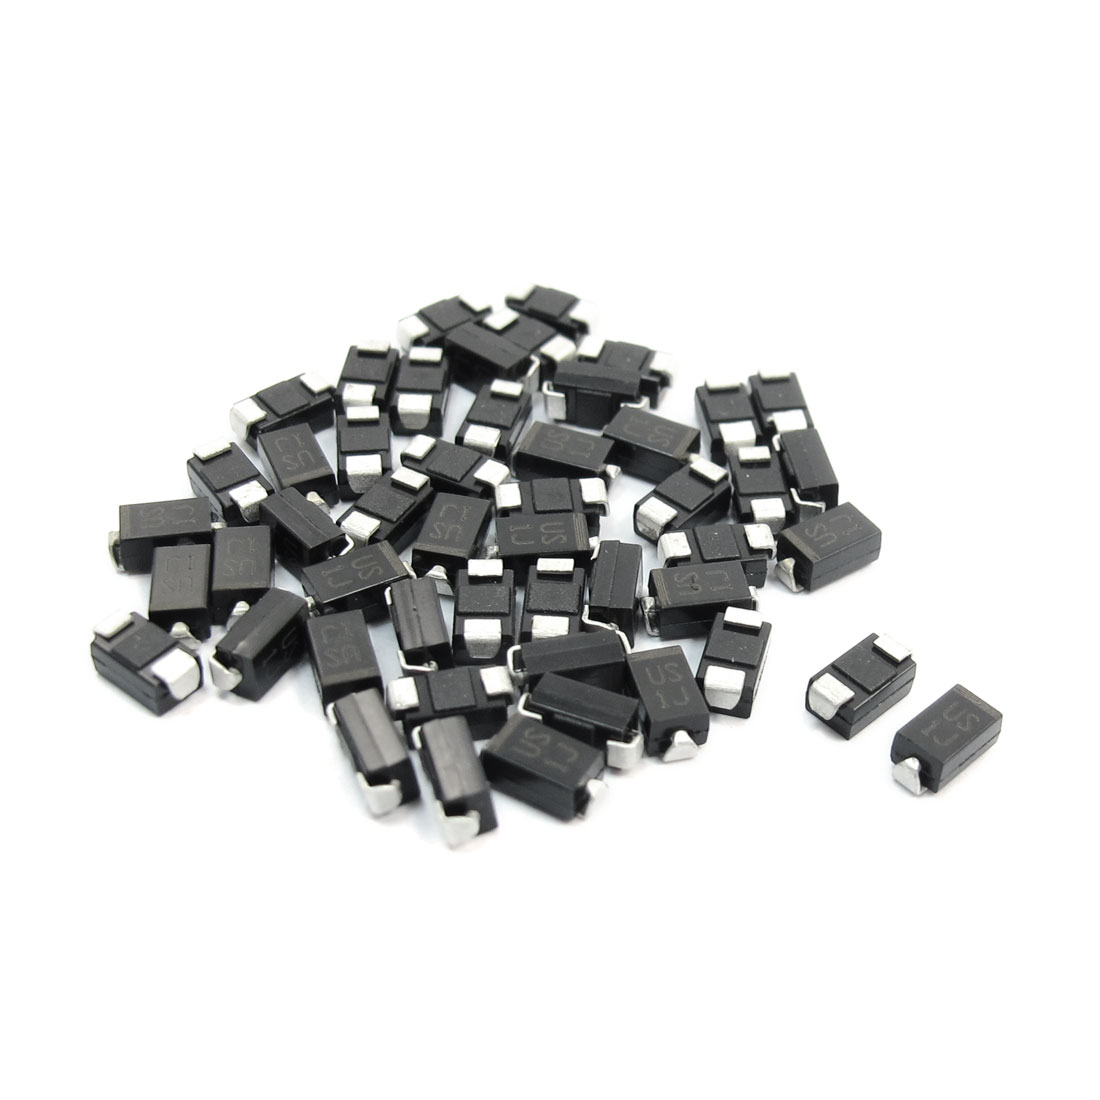 Electric SMD DO-214AC 600V 1A High Efficiency Rectifier Diode US1J 50pcs